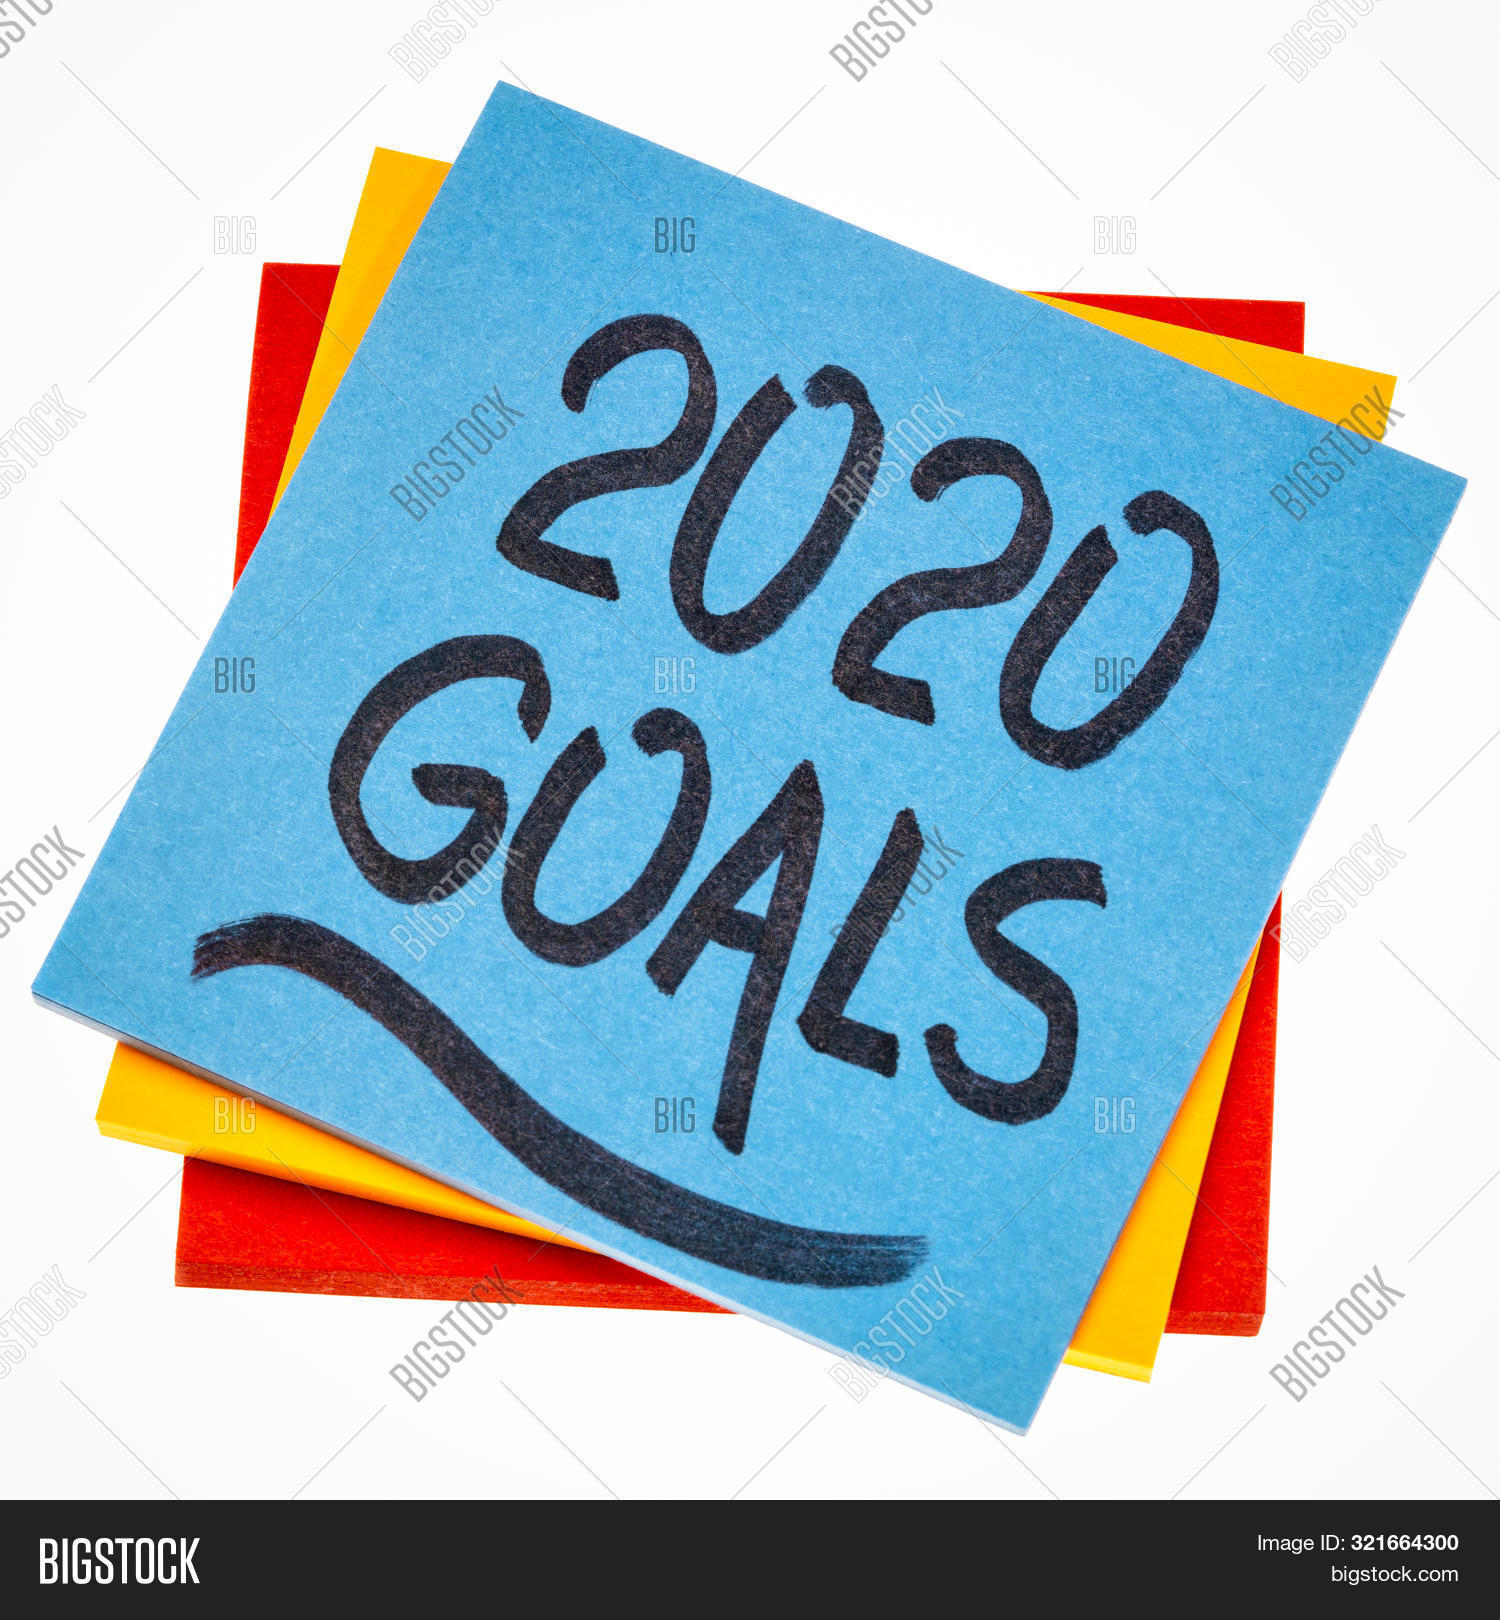 2020 goals reminder  - handwriting on an isolated sticky note, New Year resolutions and goal setting